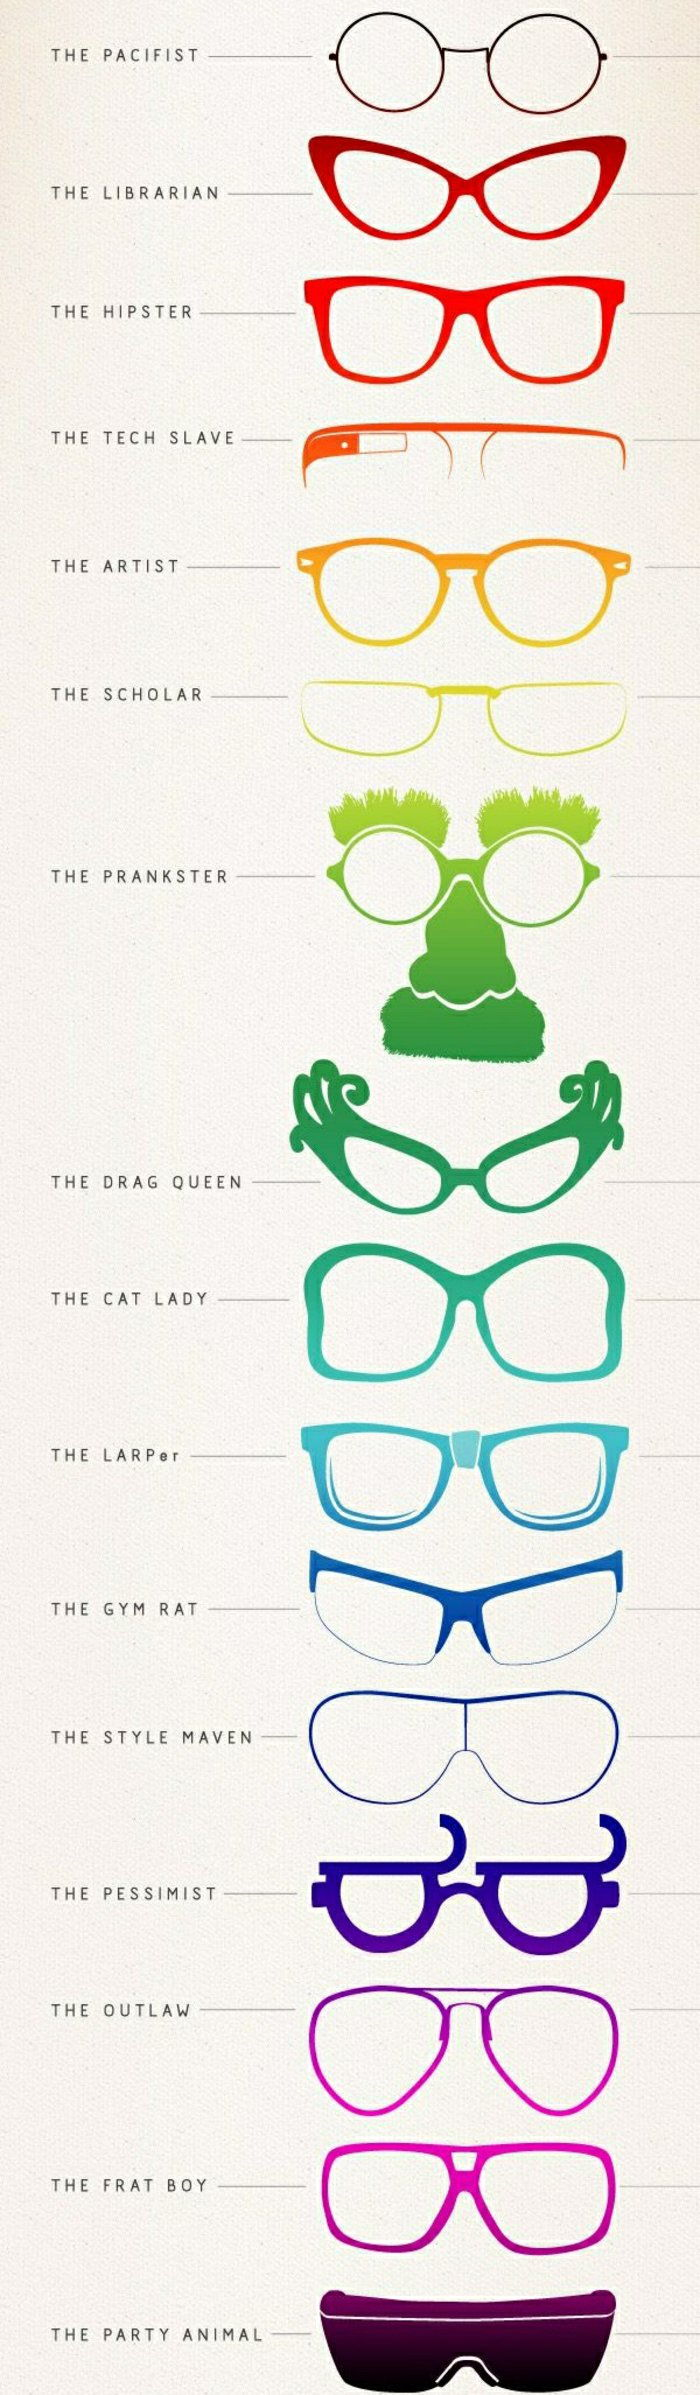 various forms of hipster glasses-human types